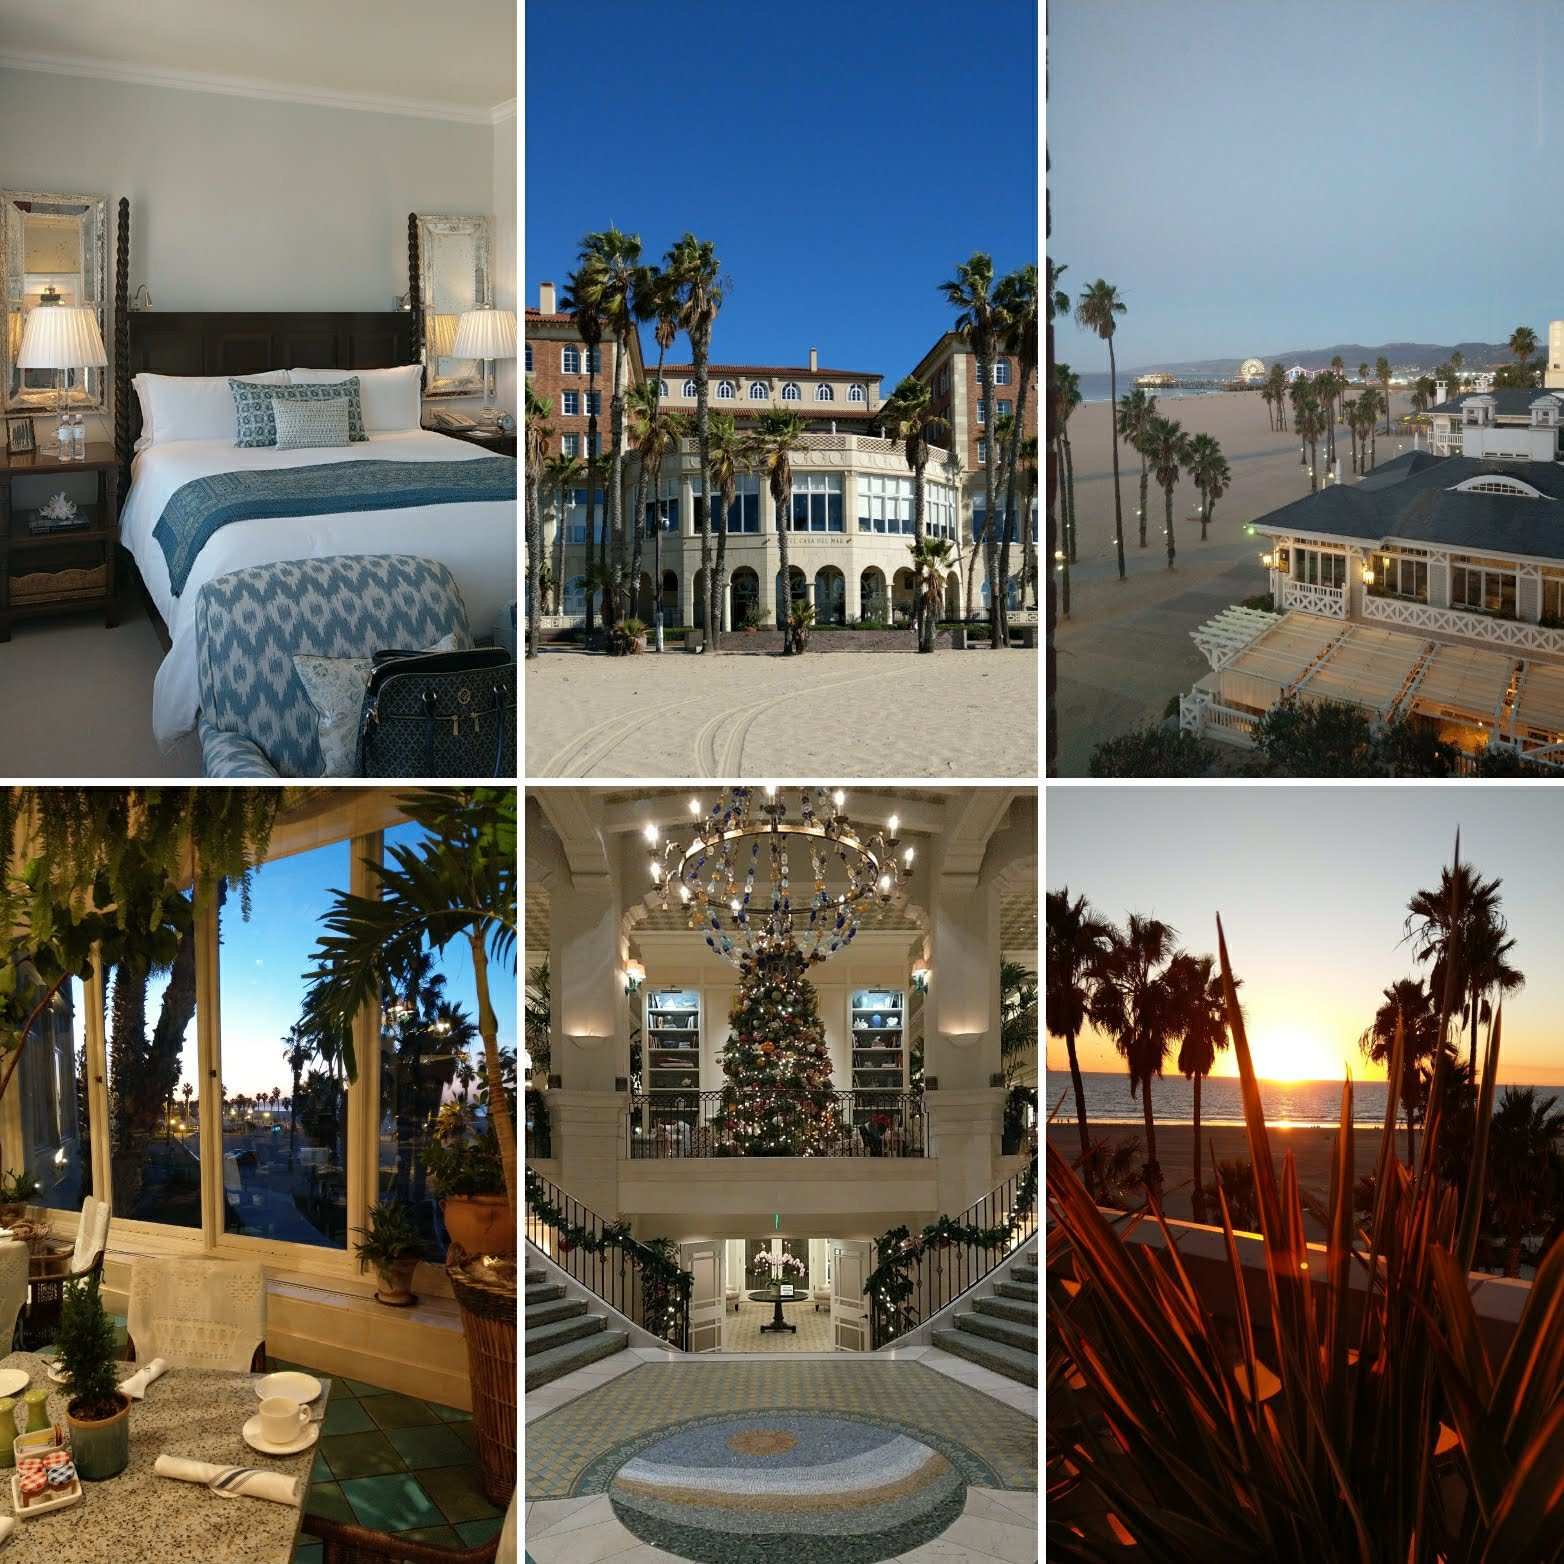 Hotel Casa Del Mar Is Perfectly Situated At Santa Monica Beach, By The  Pier. Beautiful ...